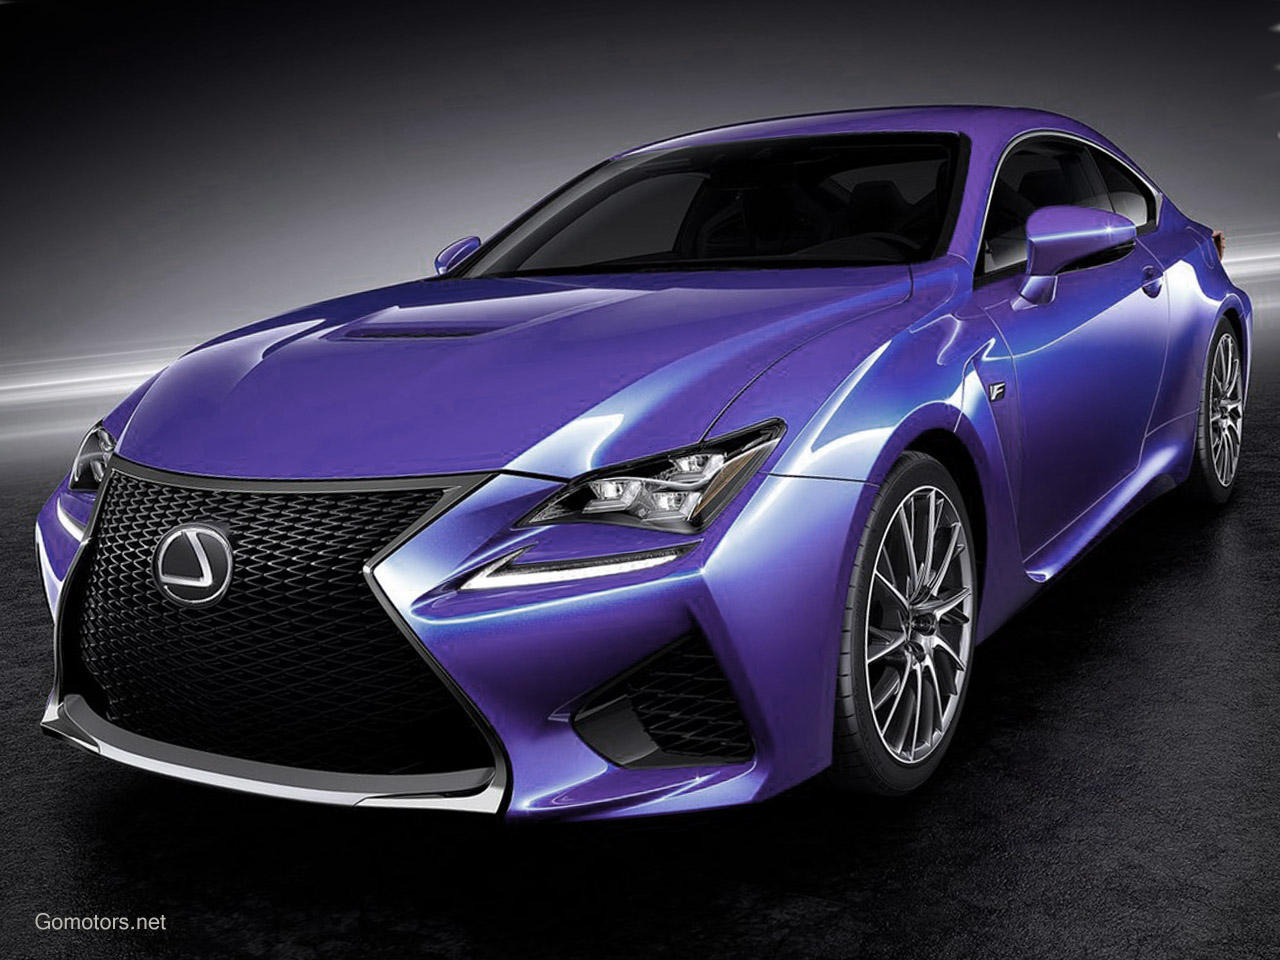 lexus rc f 2015 reviews lexus rc f 2015 car reviews. Black Bedroom Furniture Sets. Home Design Ideas